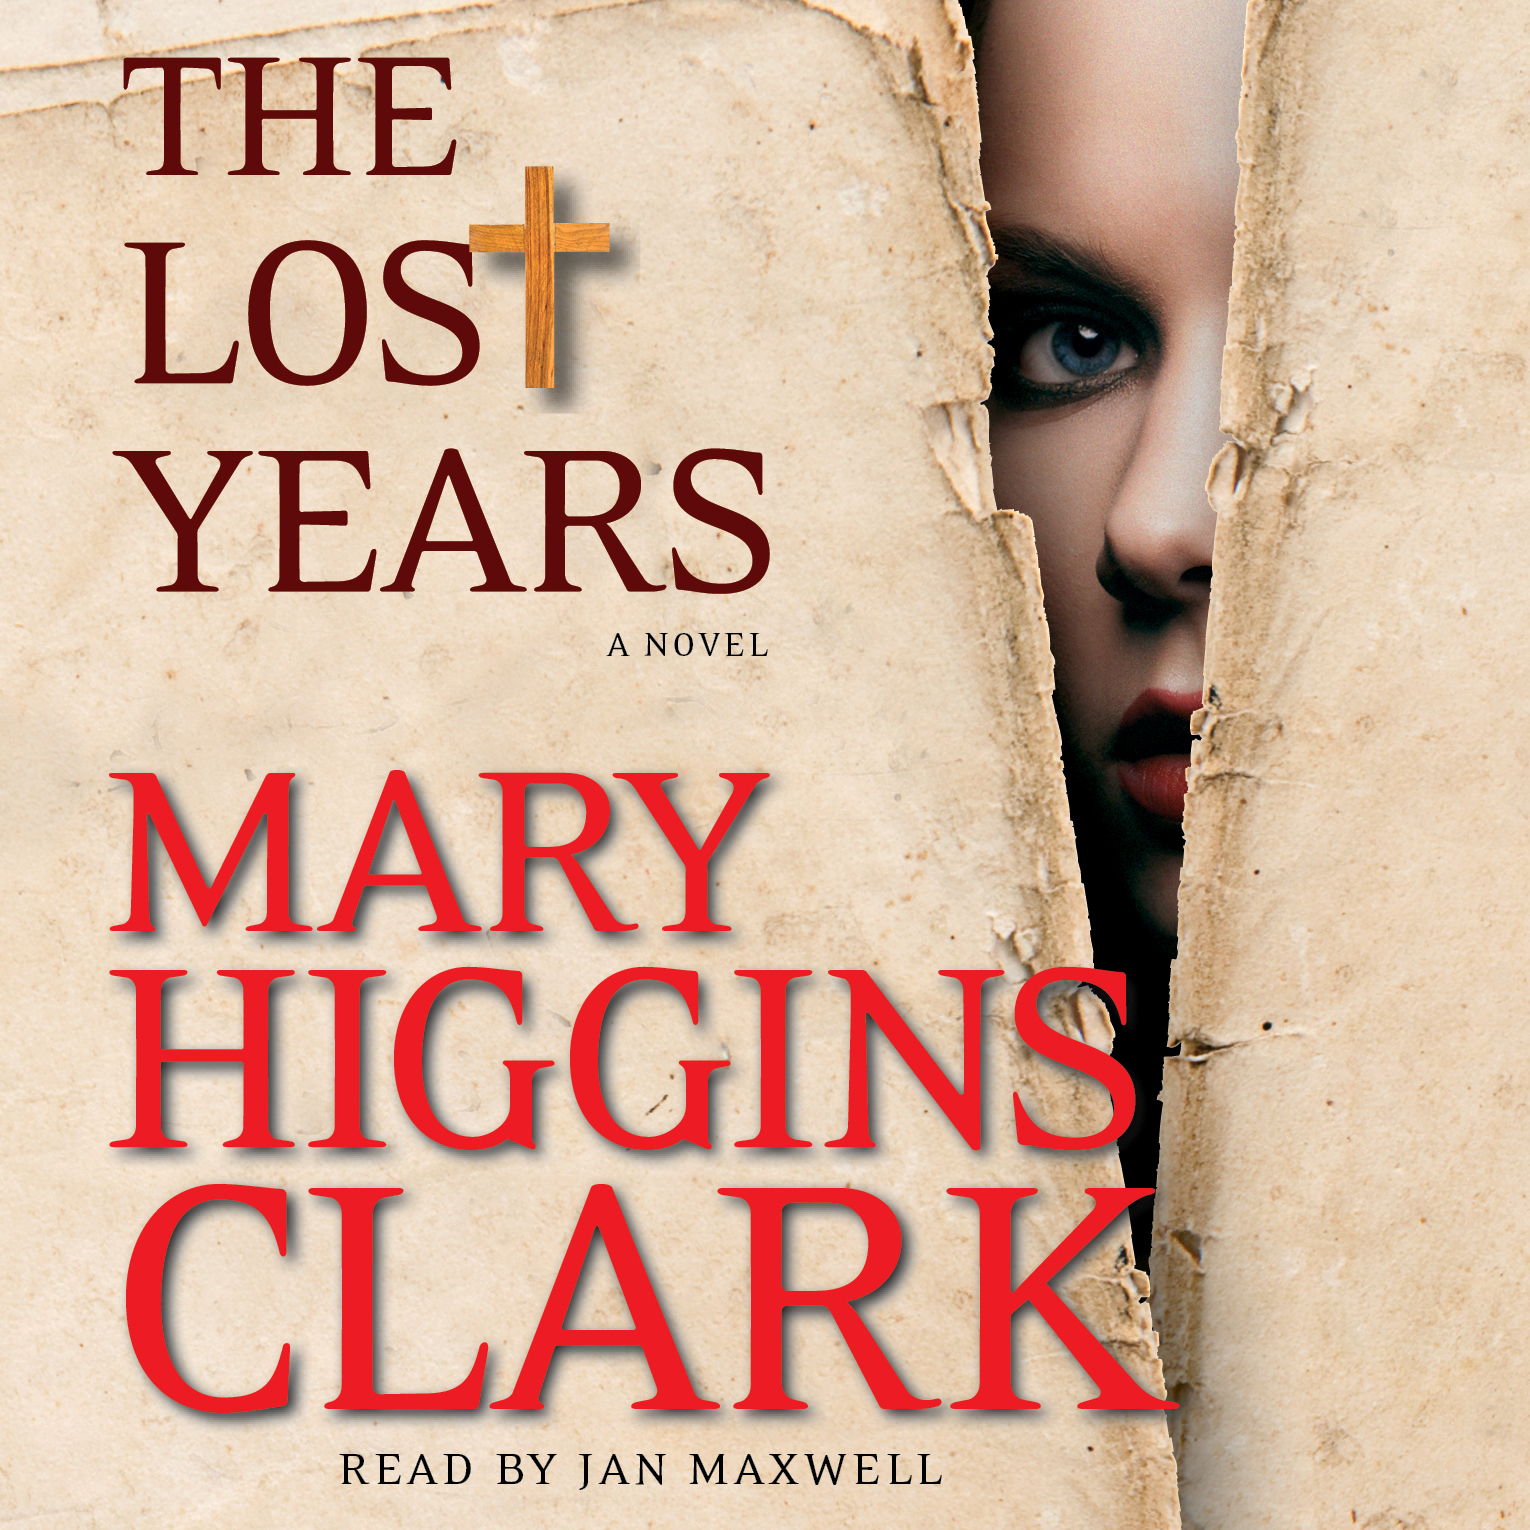 Mary Higgins Clark Mejores Libros The Lost Years Audiobook By Mary Higgins Clark Jan